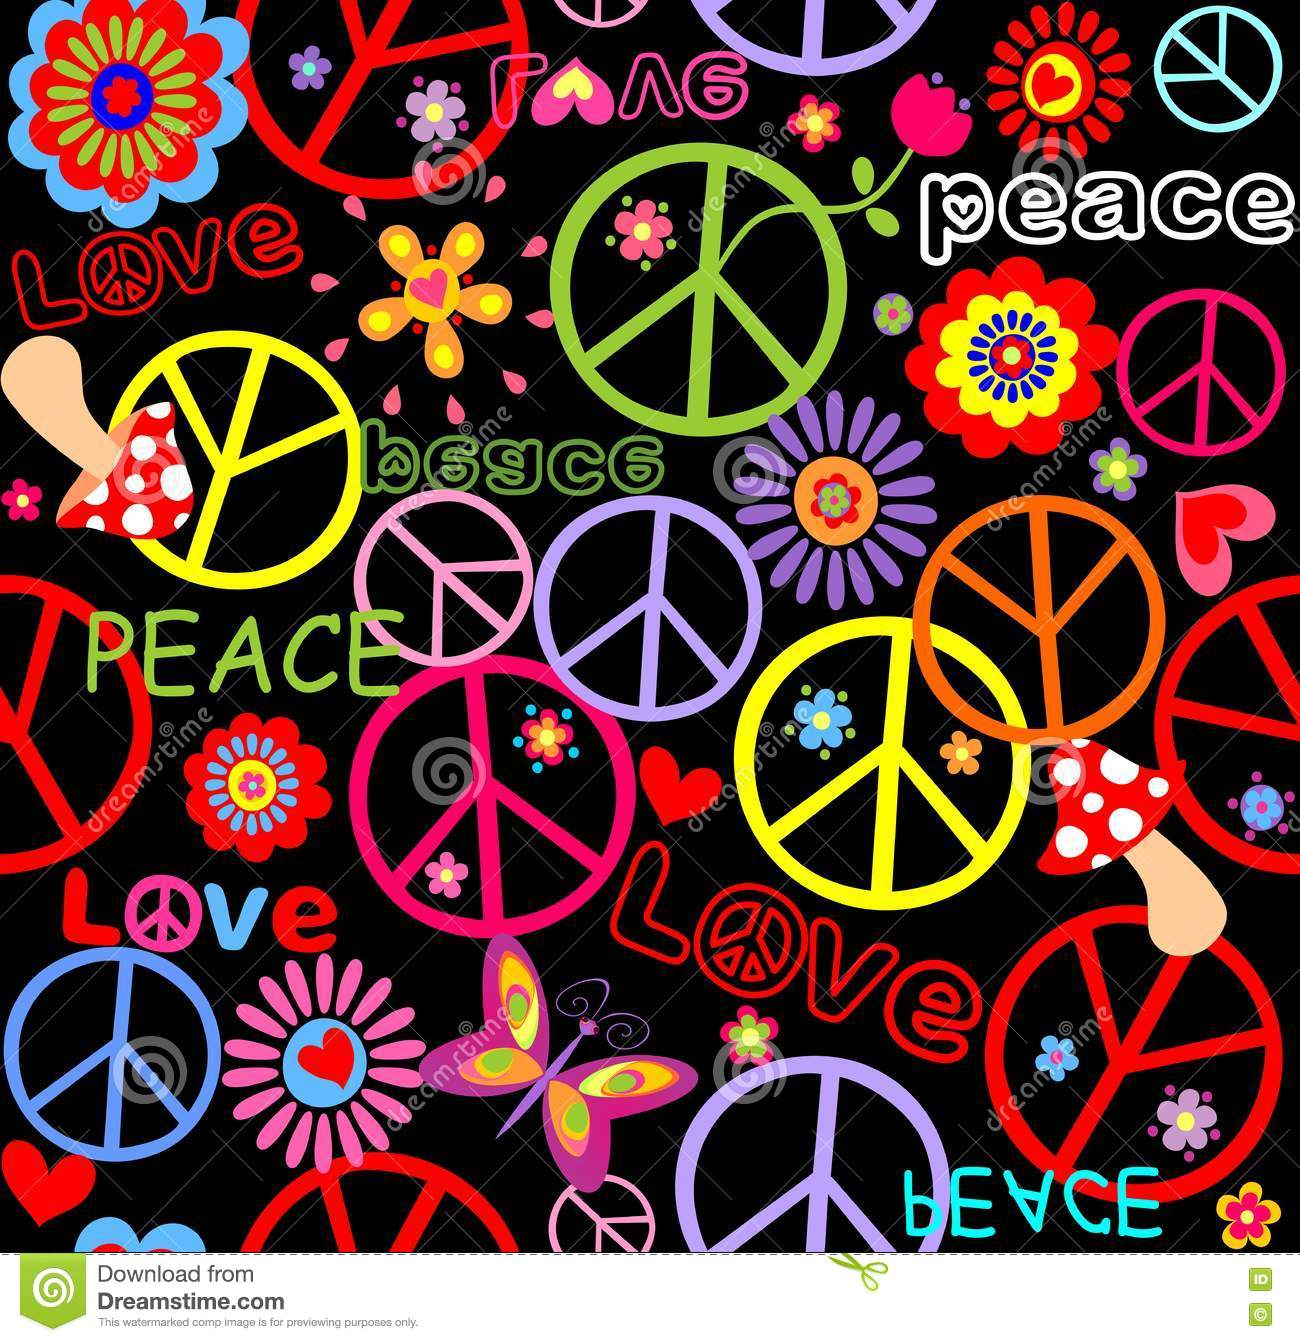 Hippie wallpaper with peace symbol, abstract flowers and mushrooms